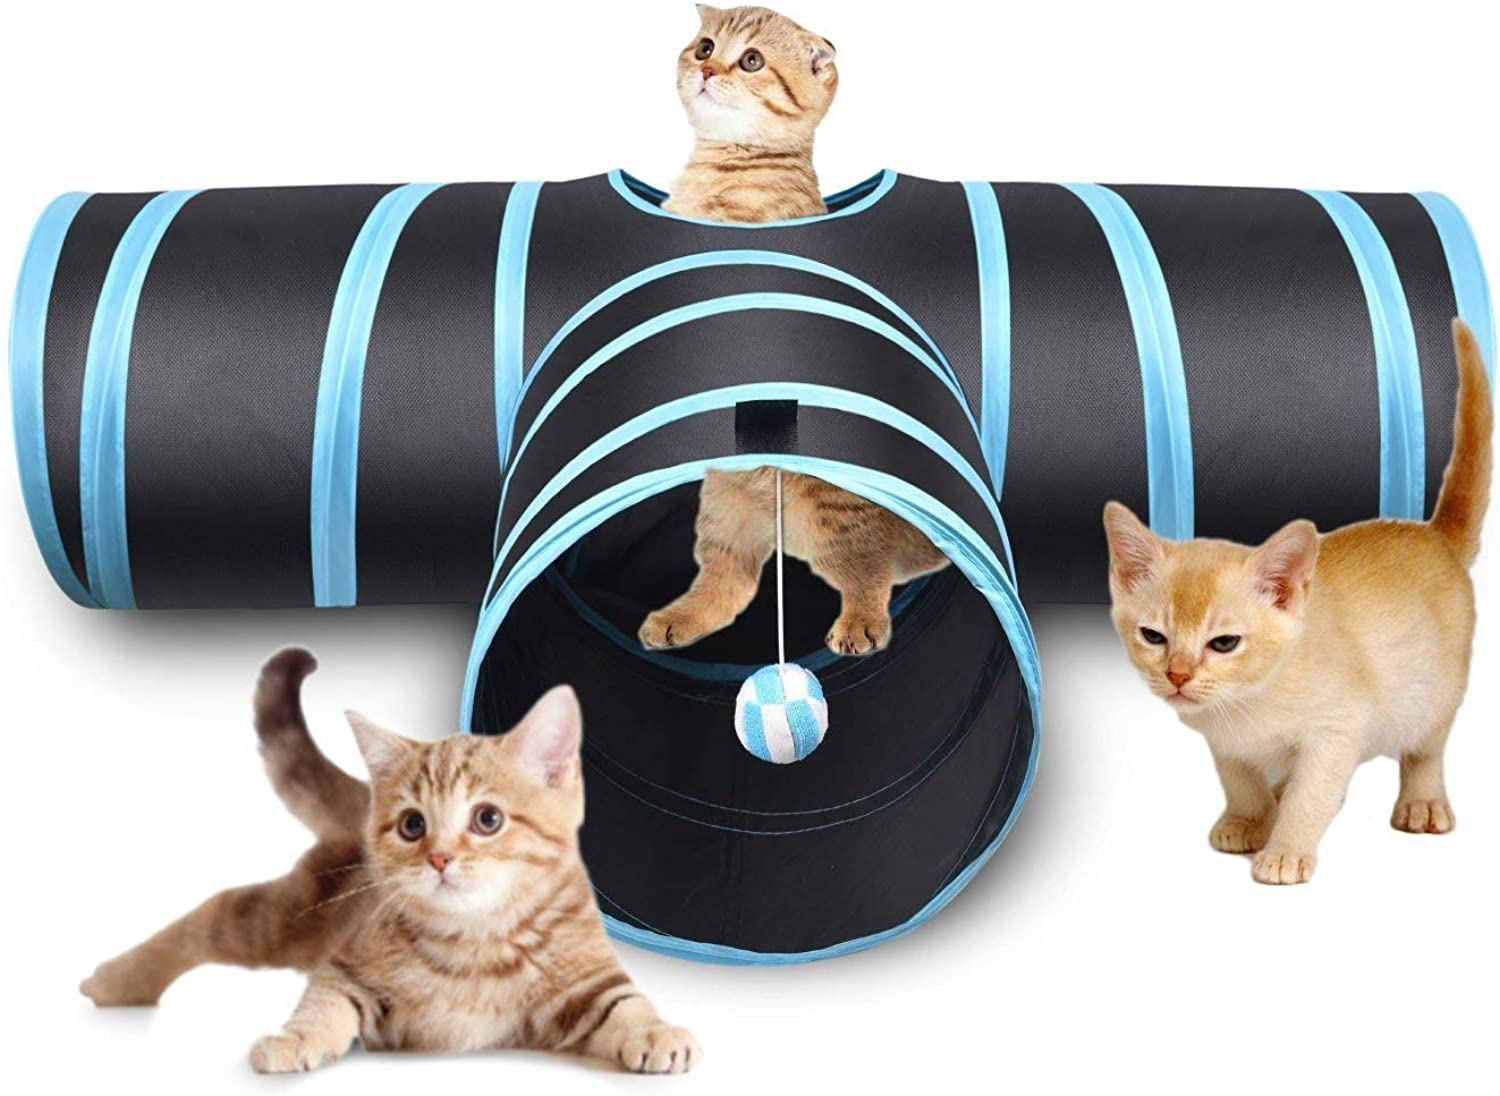 QCHOMEE Cat Tunnel Toys 3 Way Catch The Mouse Cat Puppy Kitten Rabbit Interactive Toys Collapsible Pet Play Tube Maze Toy with Ball